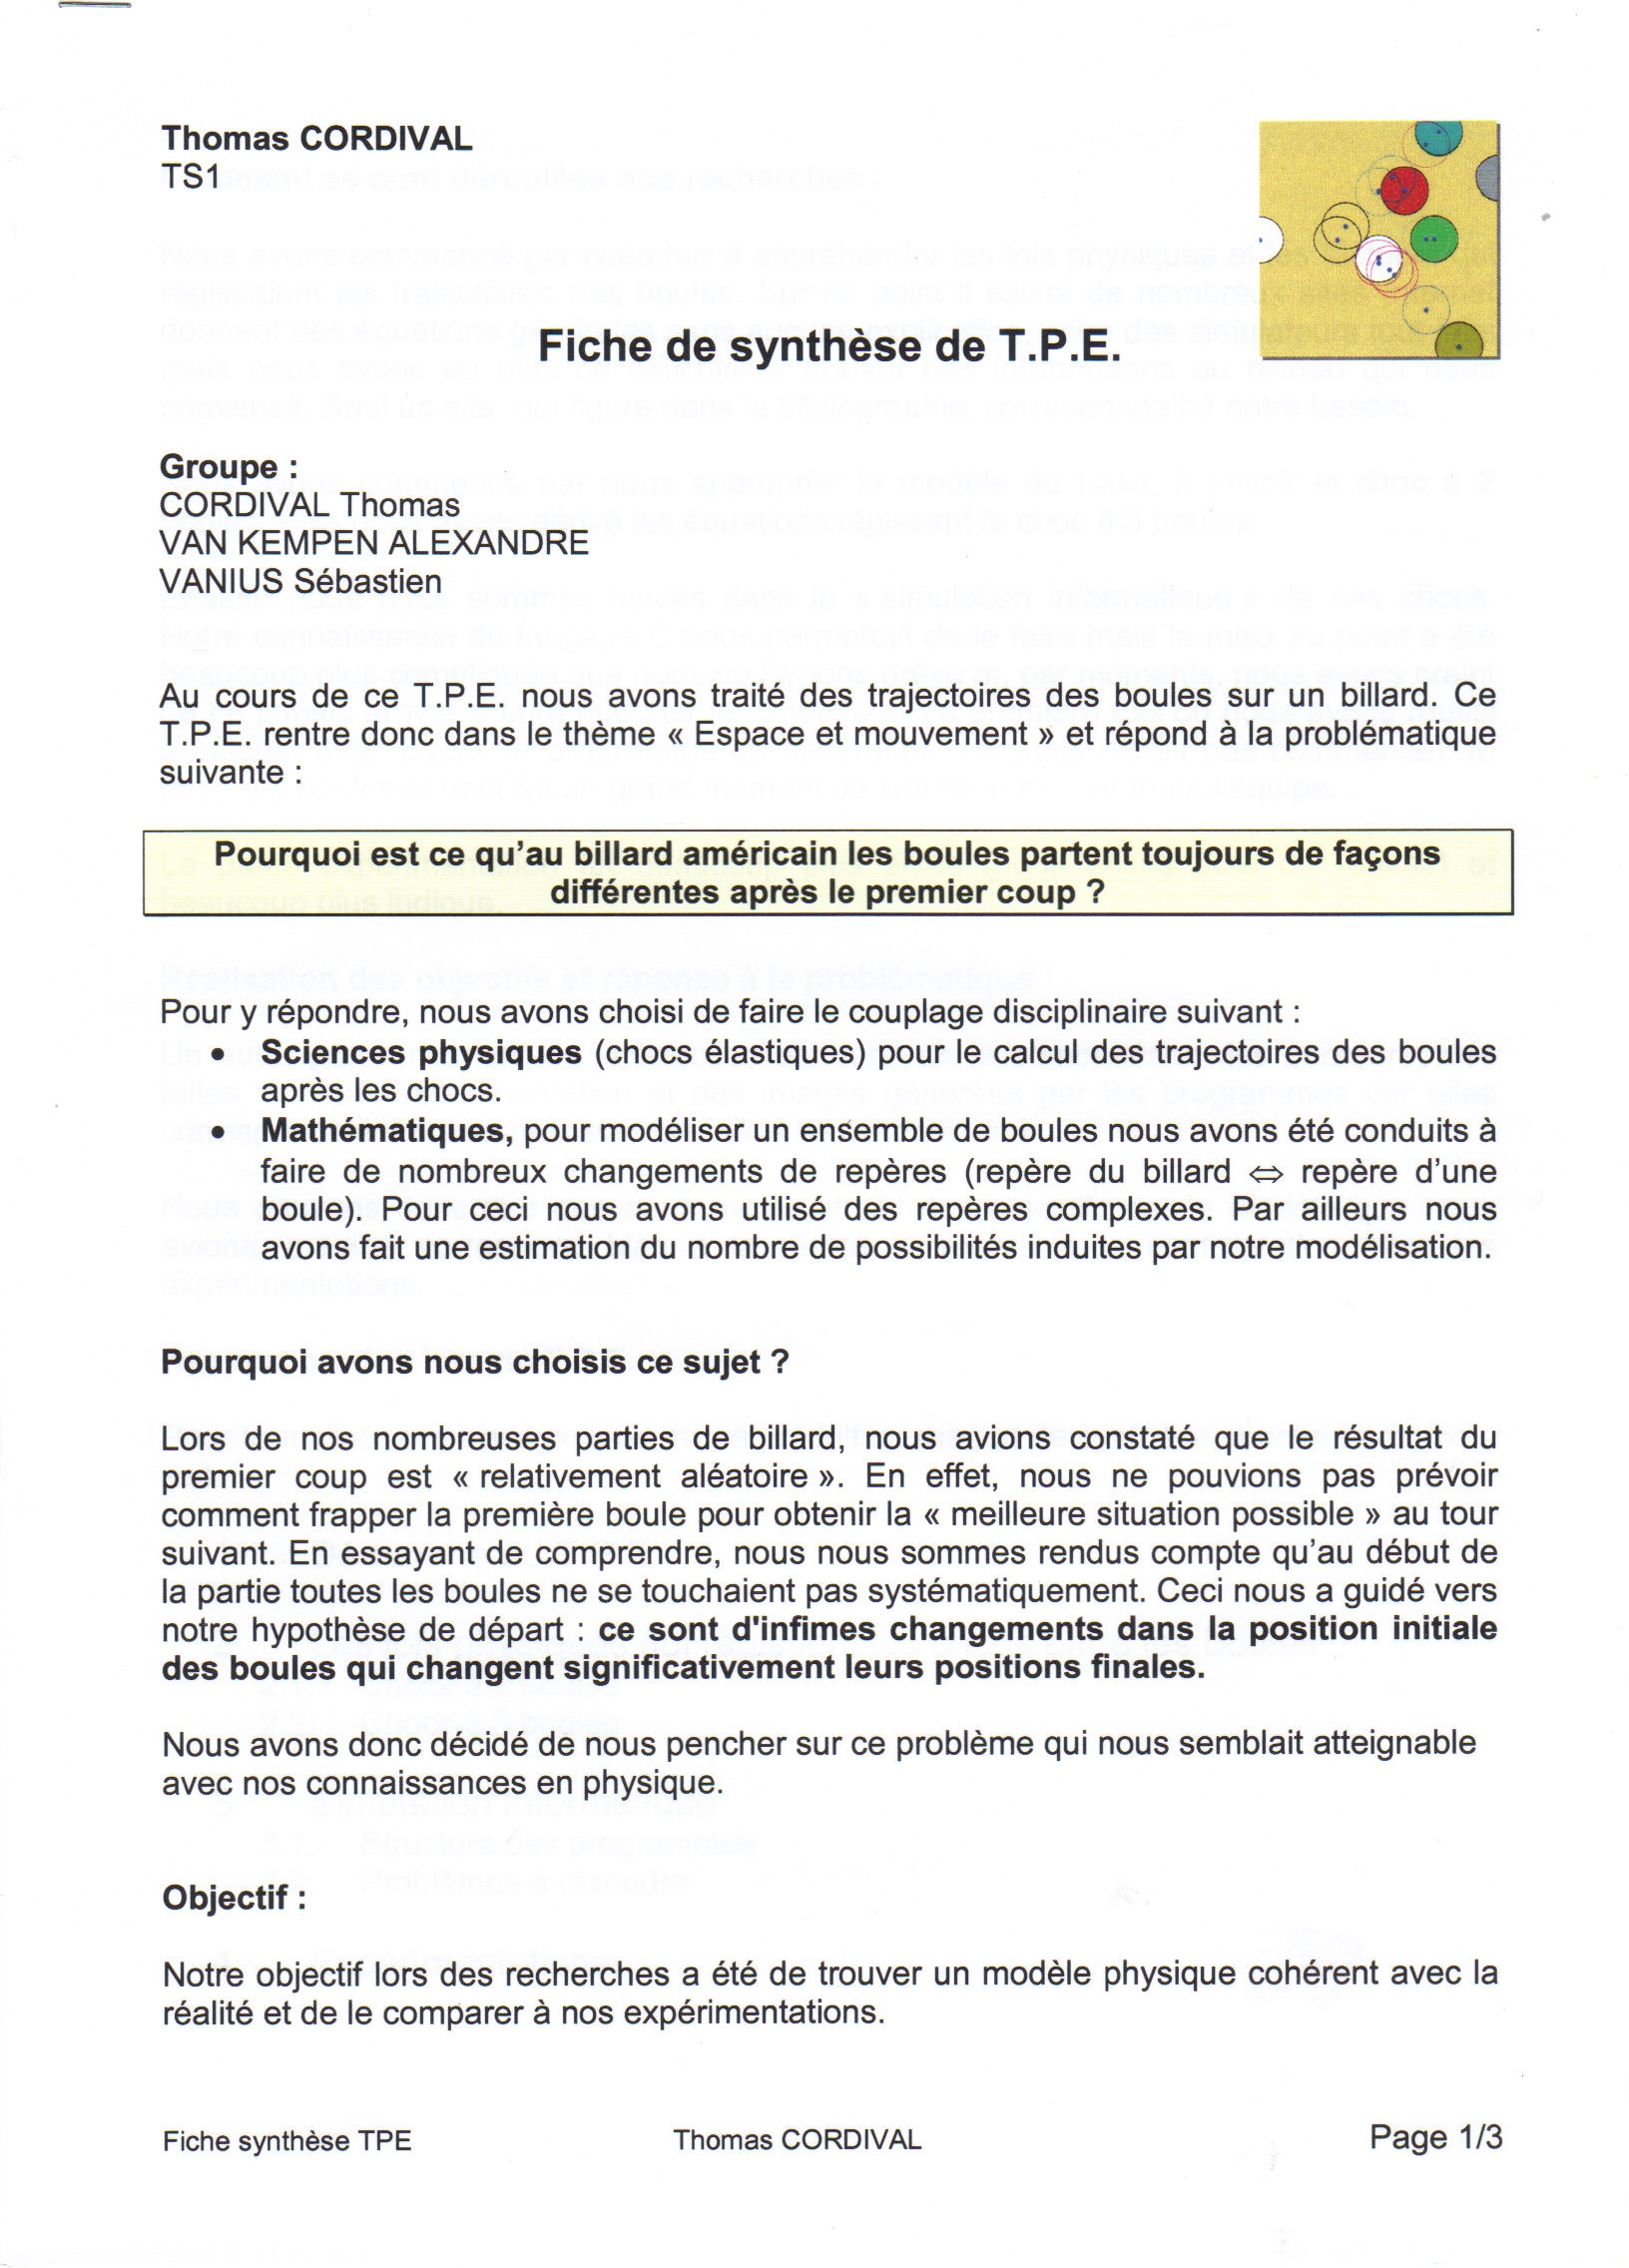 exemple de tpe synthese